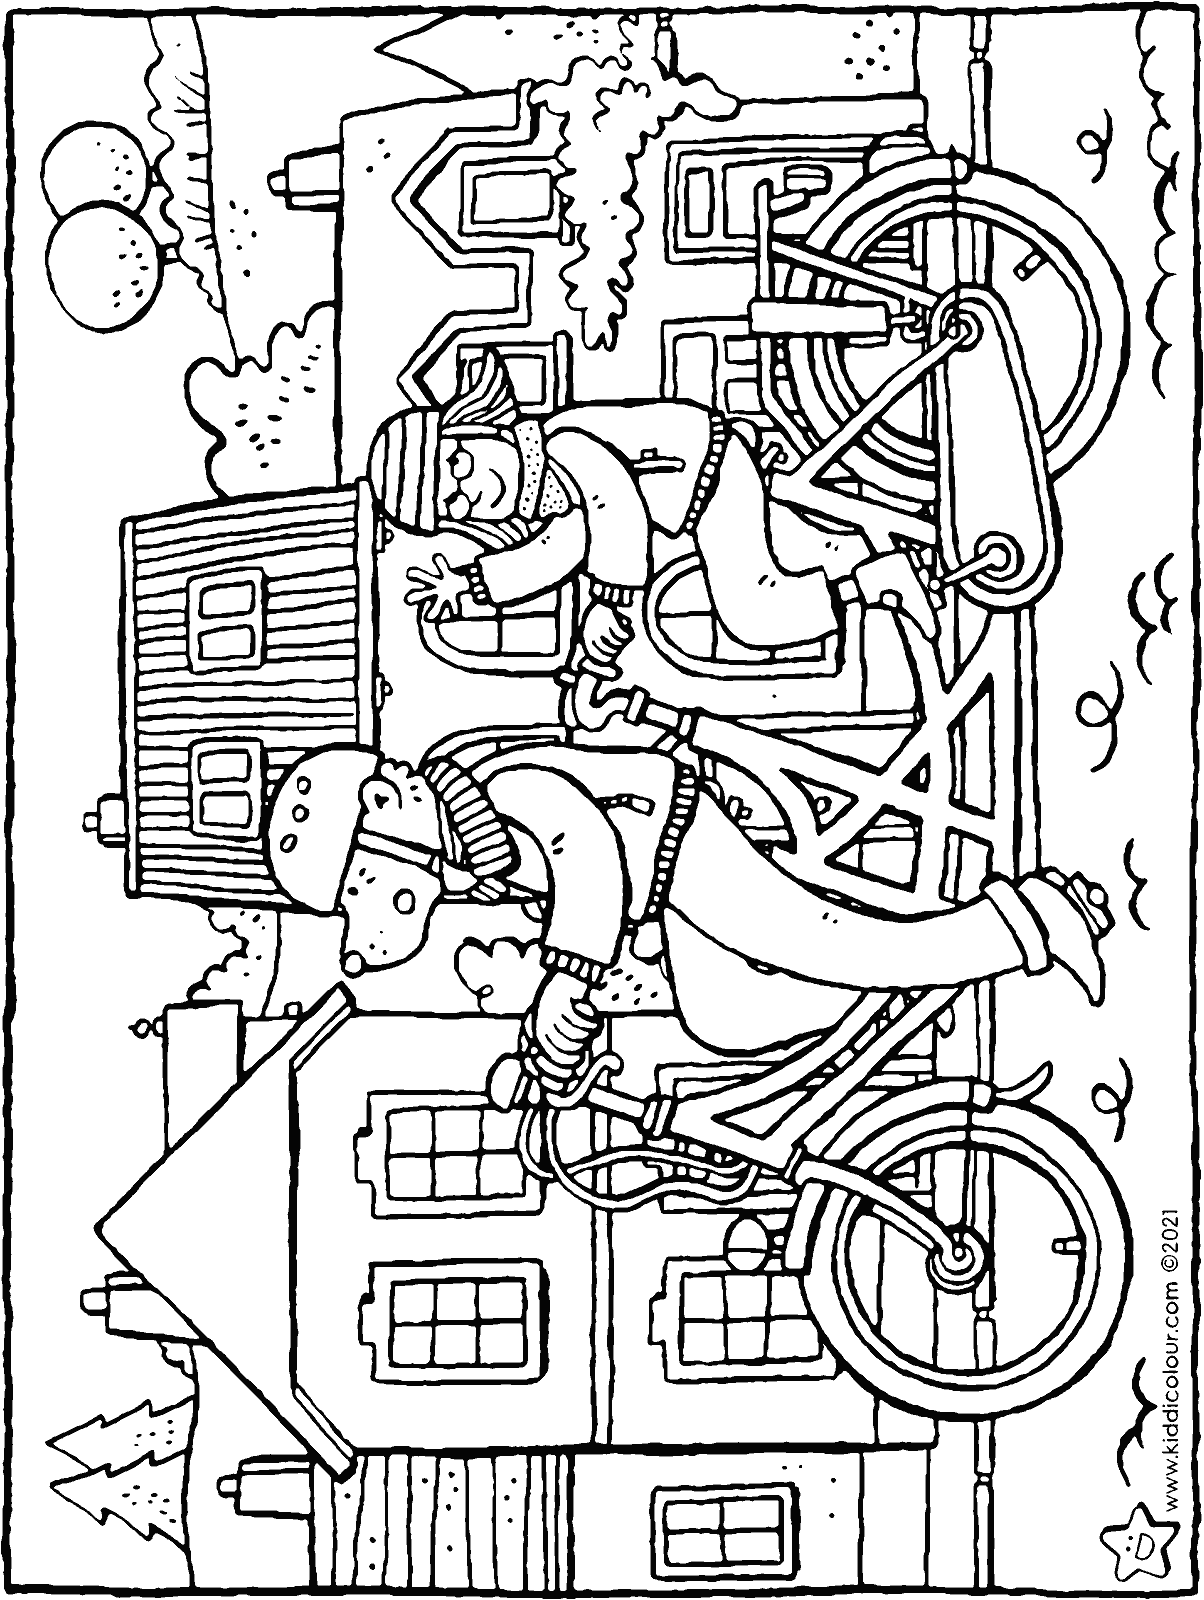 a bike ride on a tandem colouring page drawing picture 01H